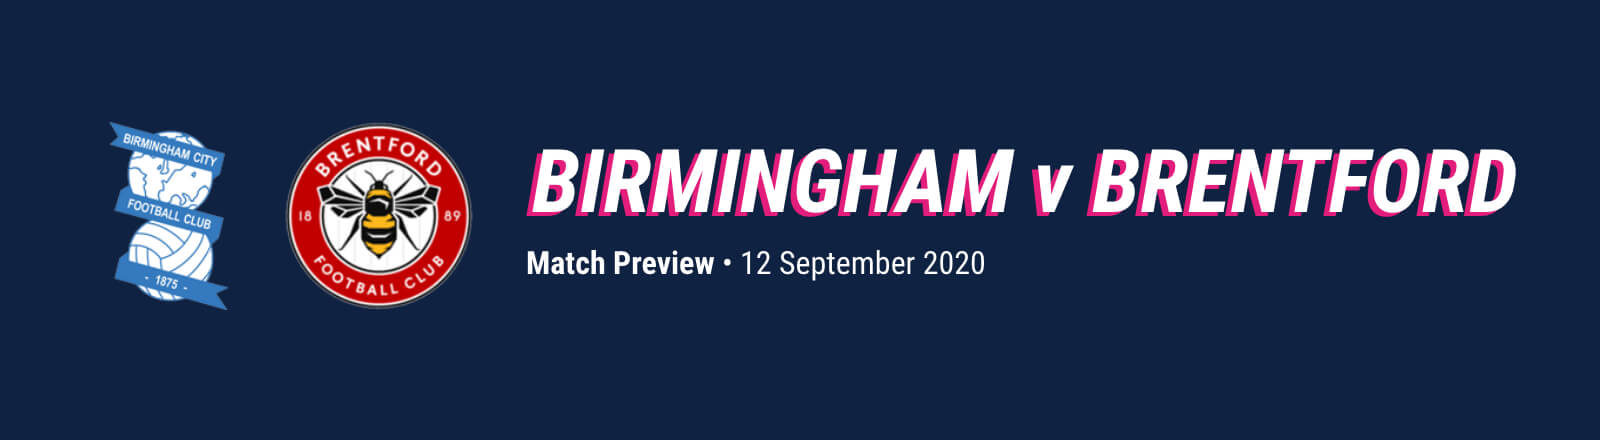 Birmingham vs Brentford Match Preview